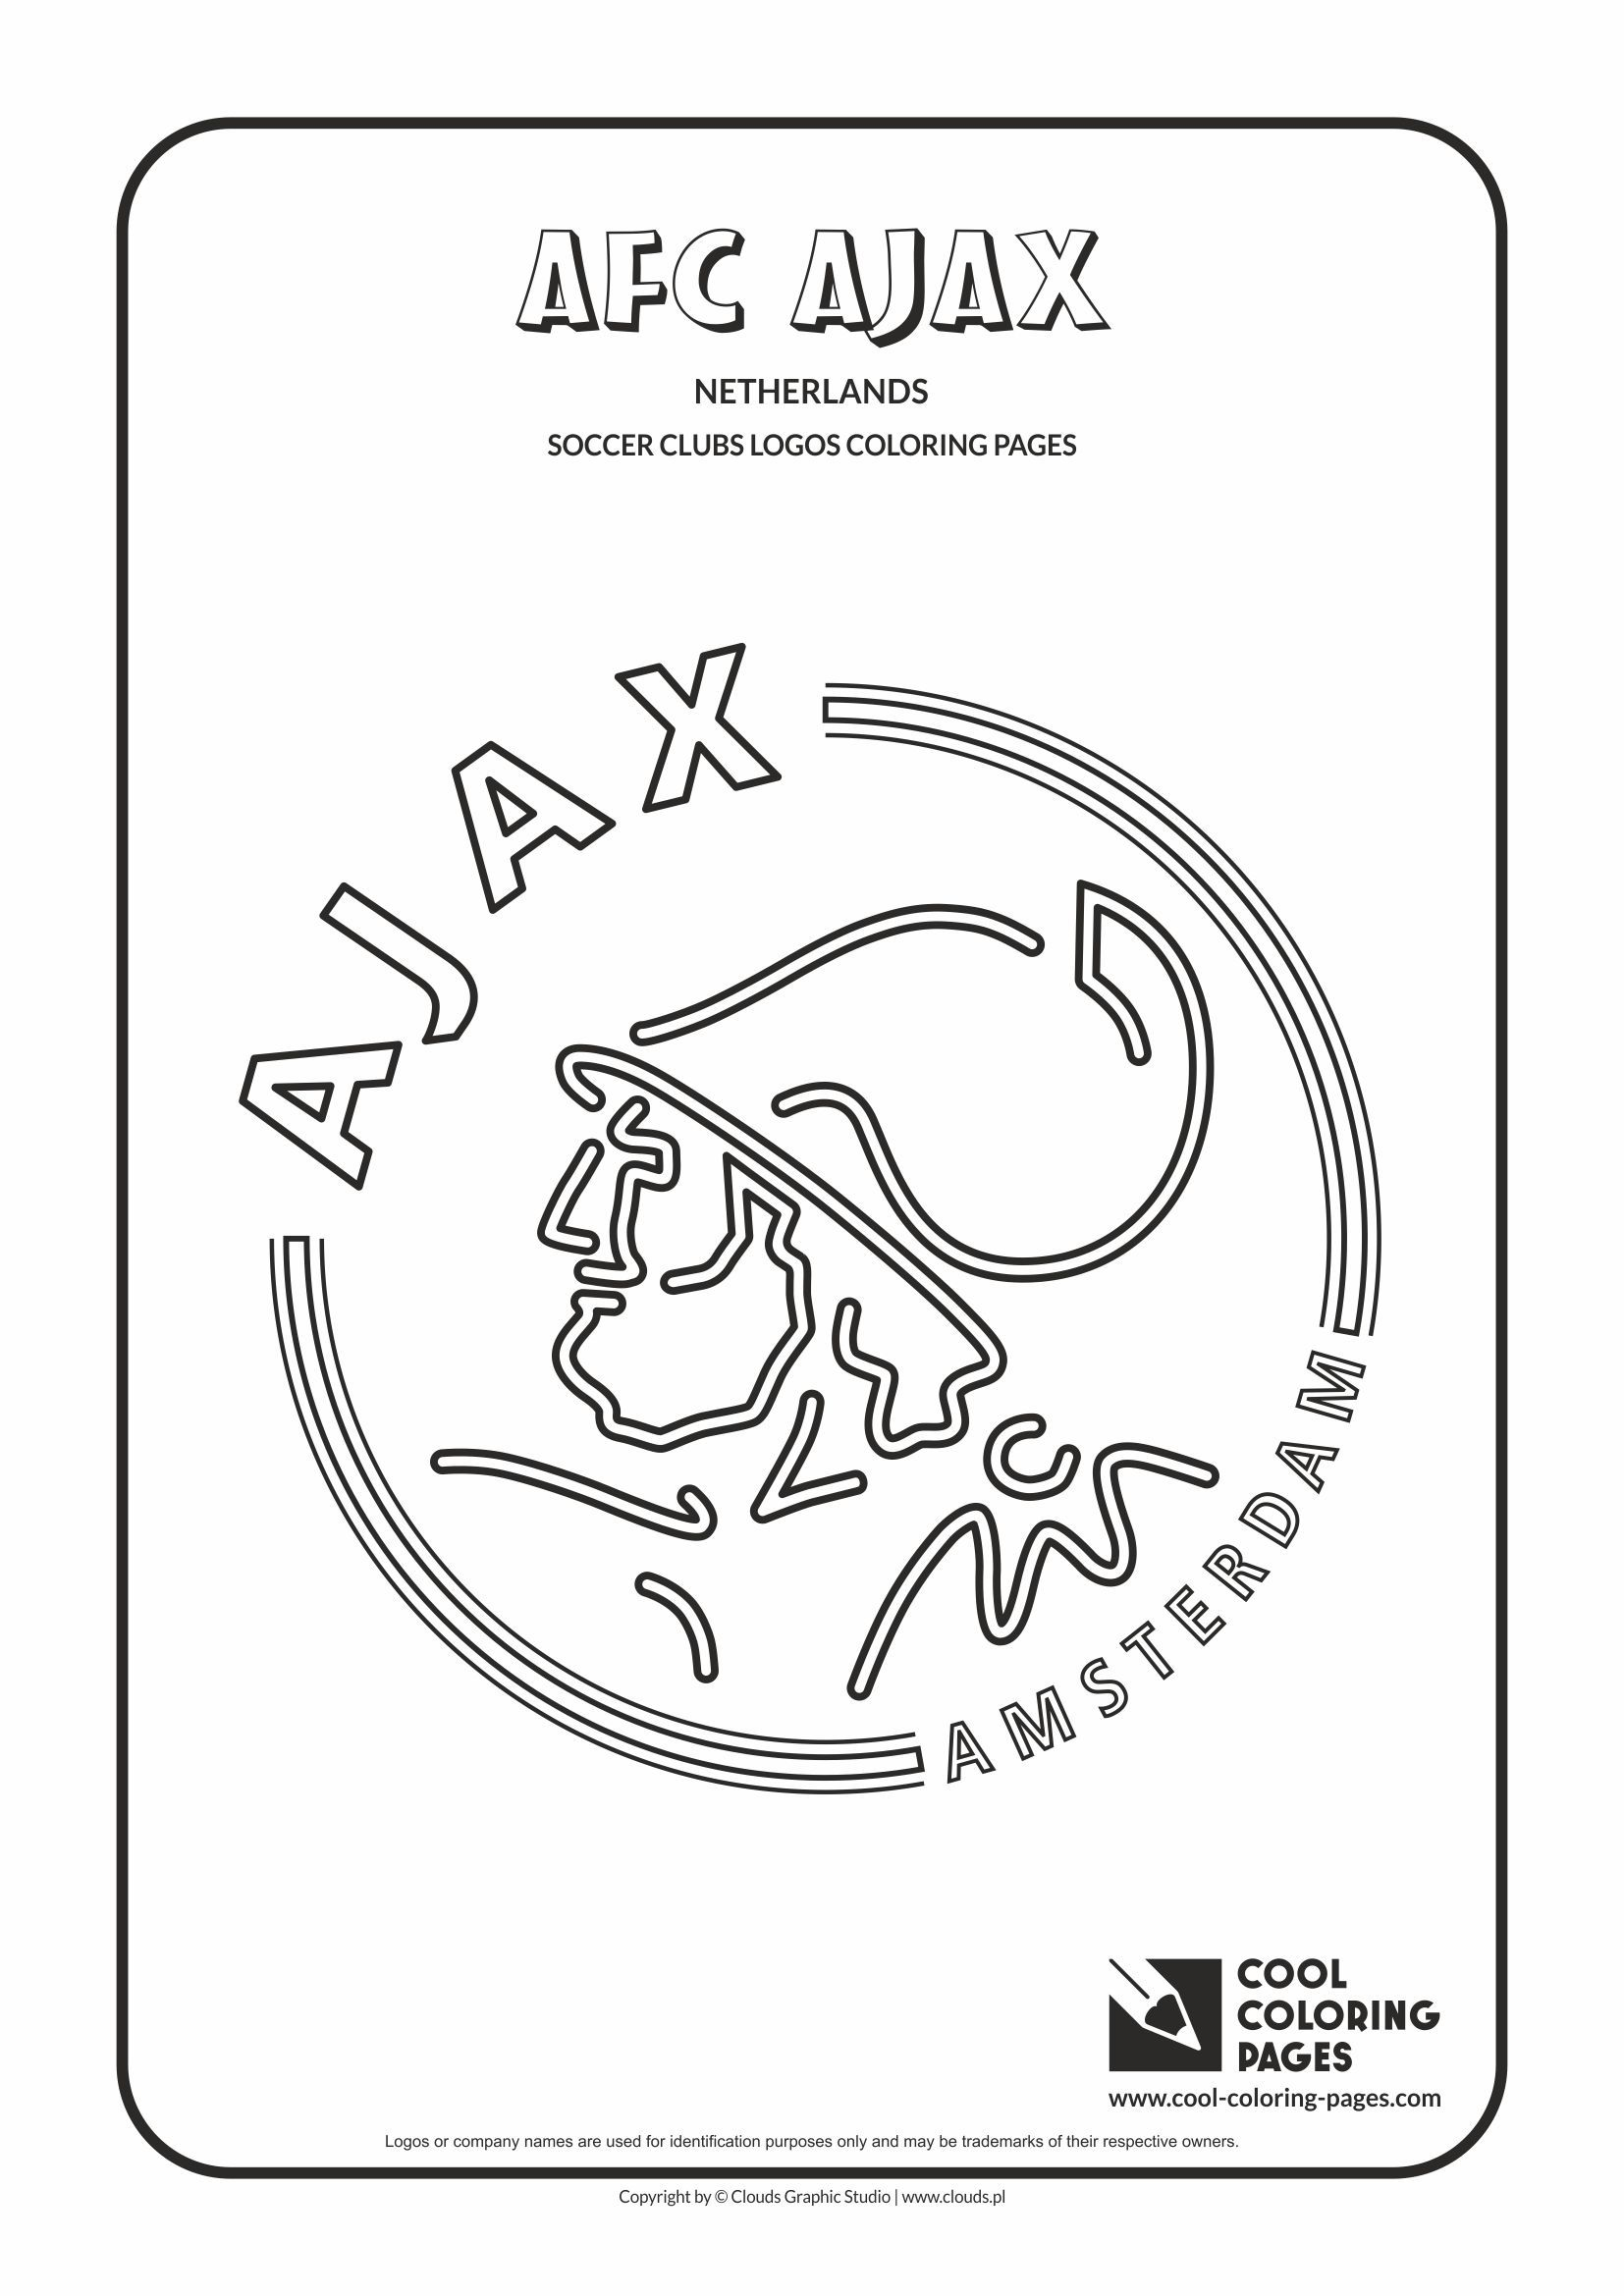 Cool Coloring Pages - Soccer Clubs Logos / AFC Ajax logo / Coloring ...